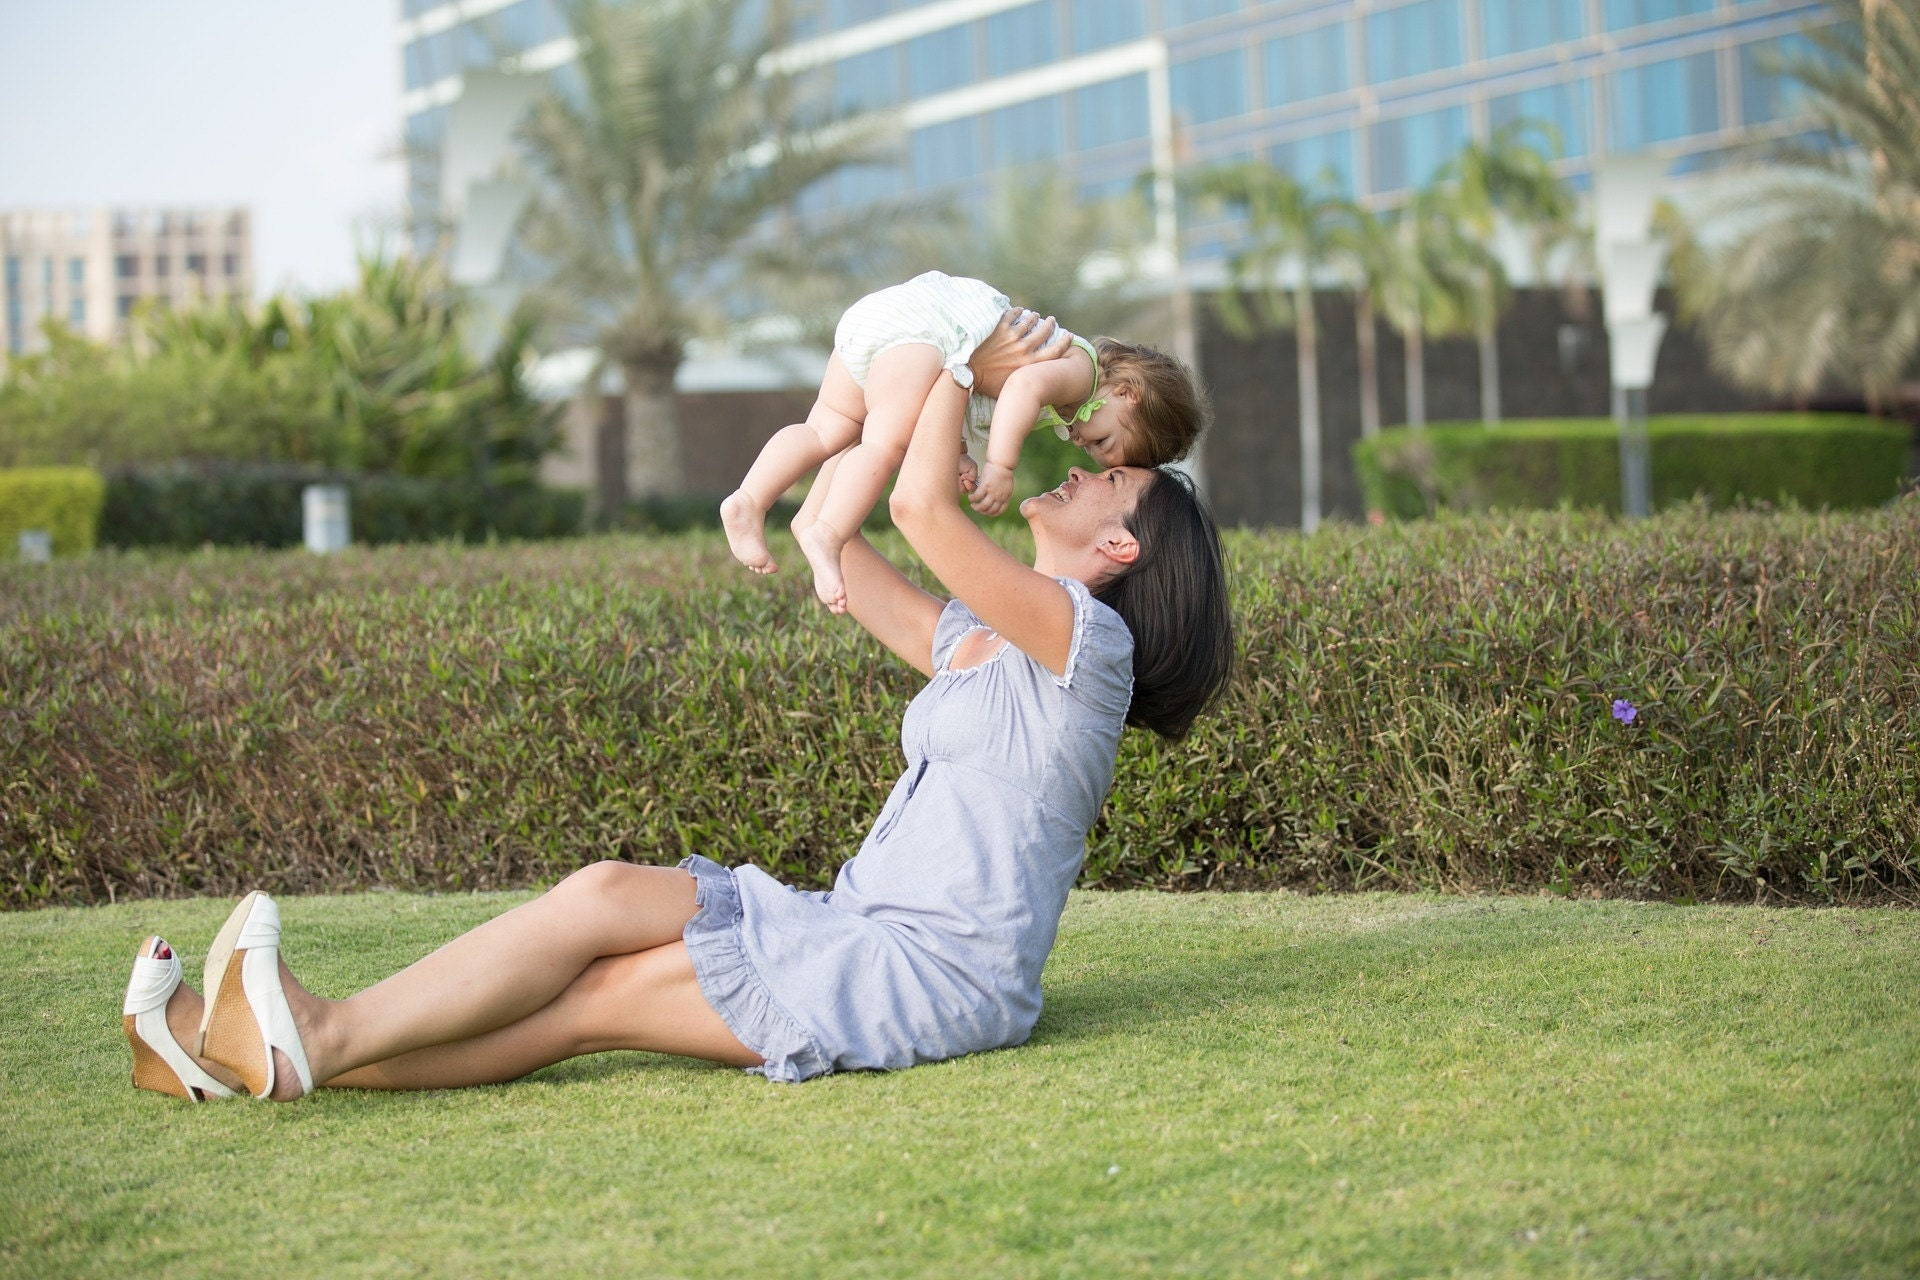 Outdoor play, mom, child